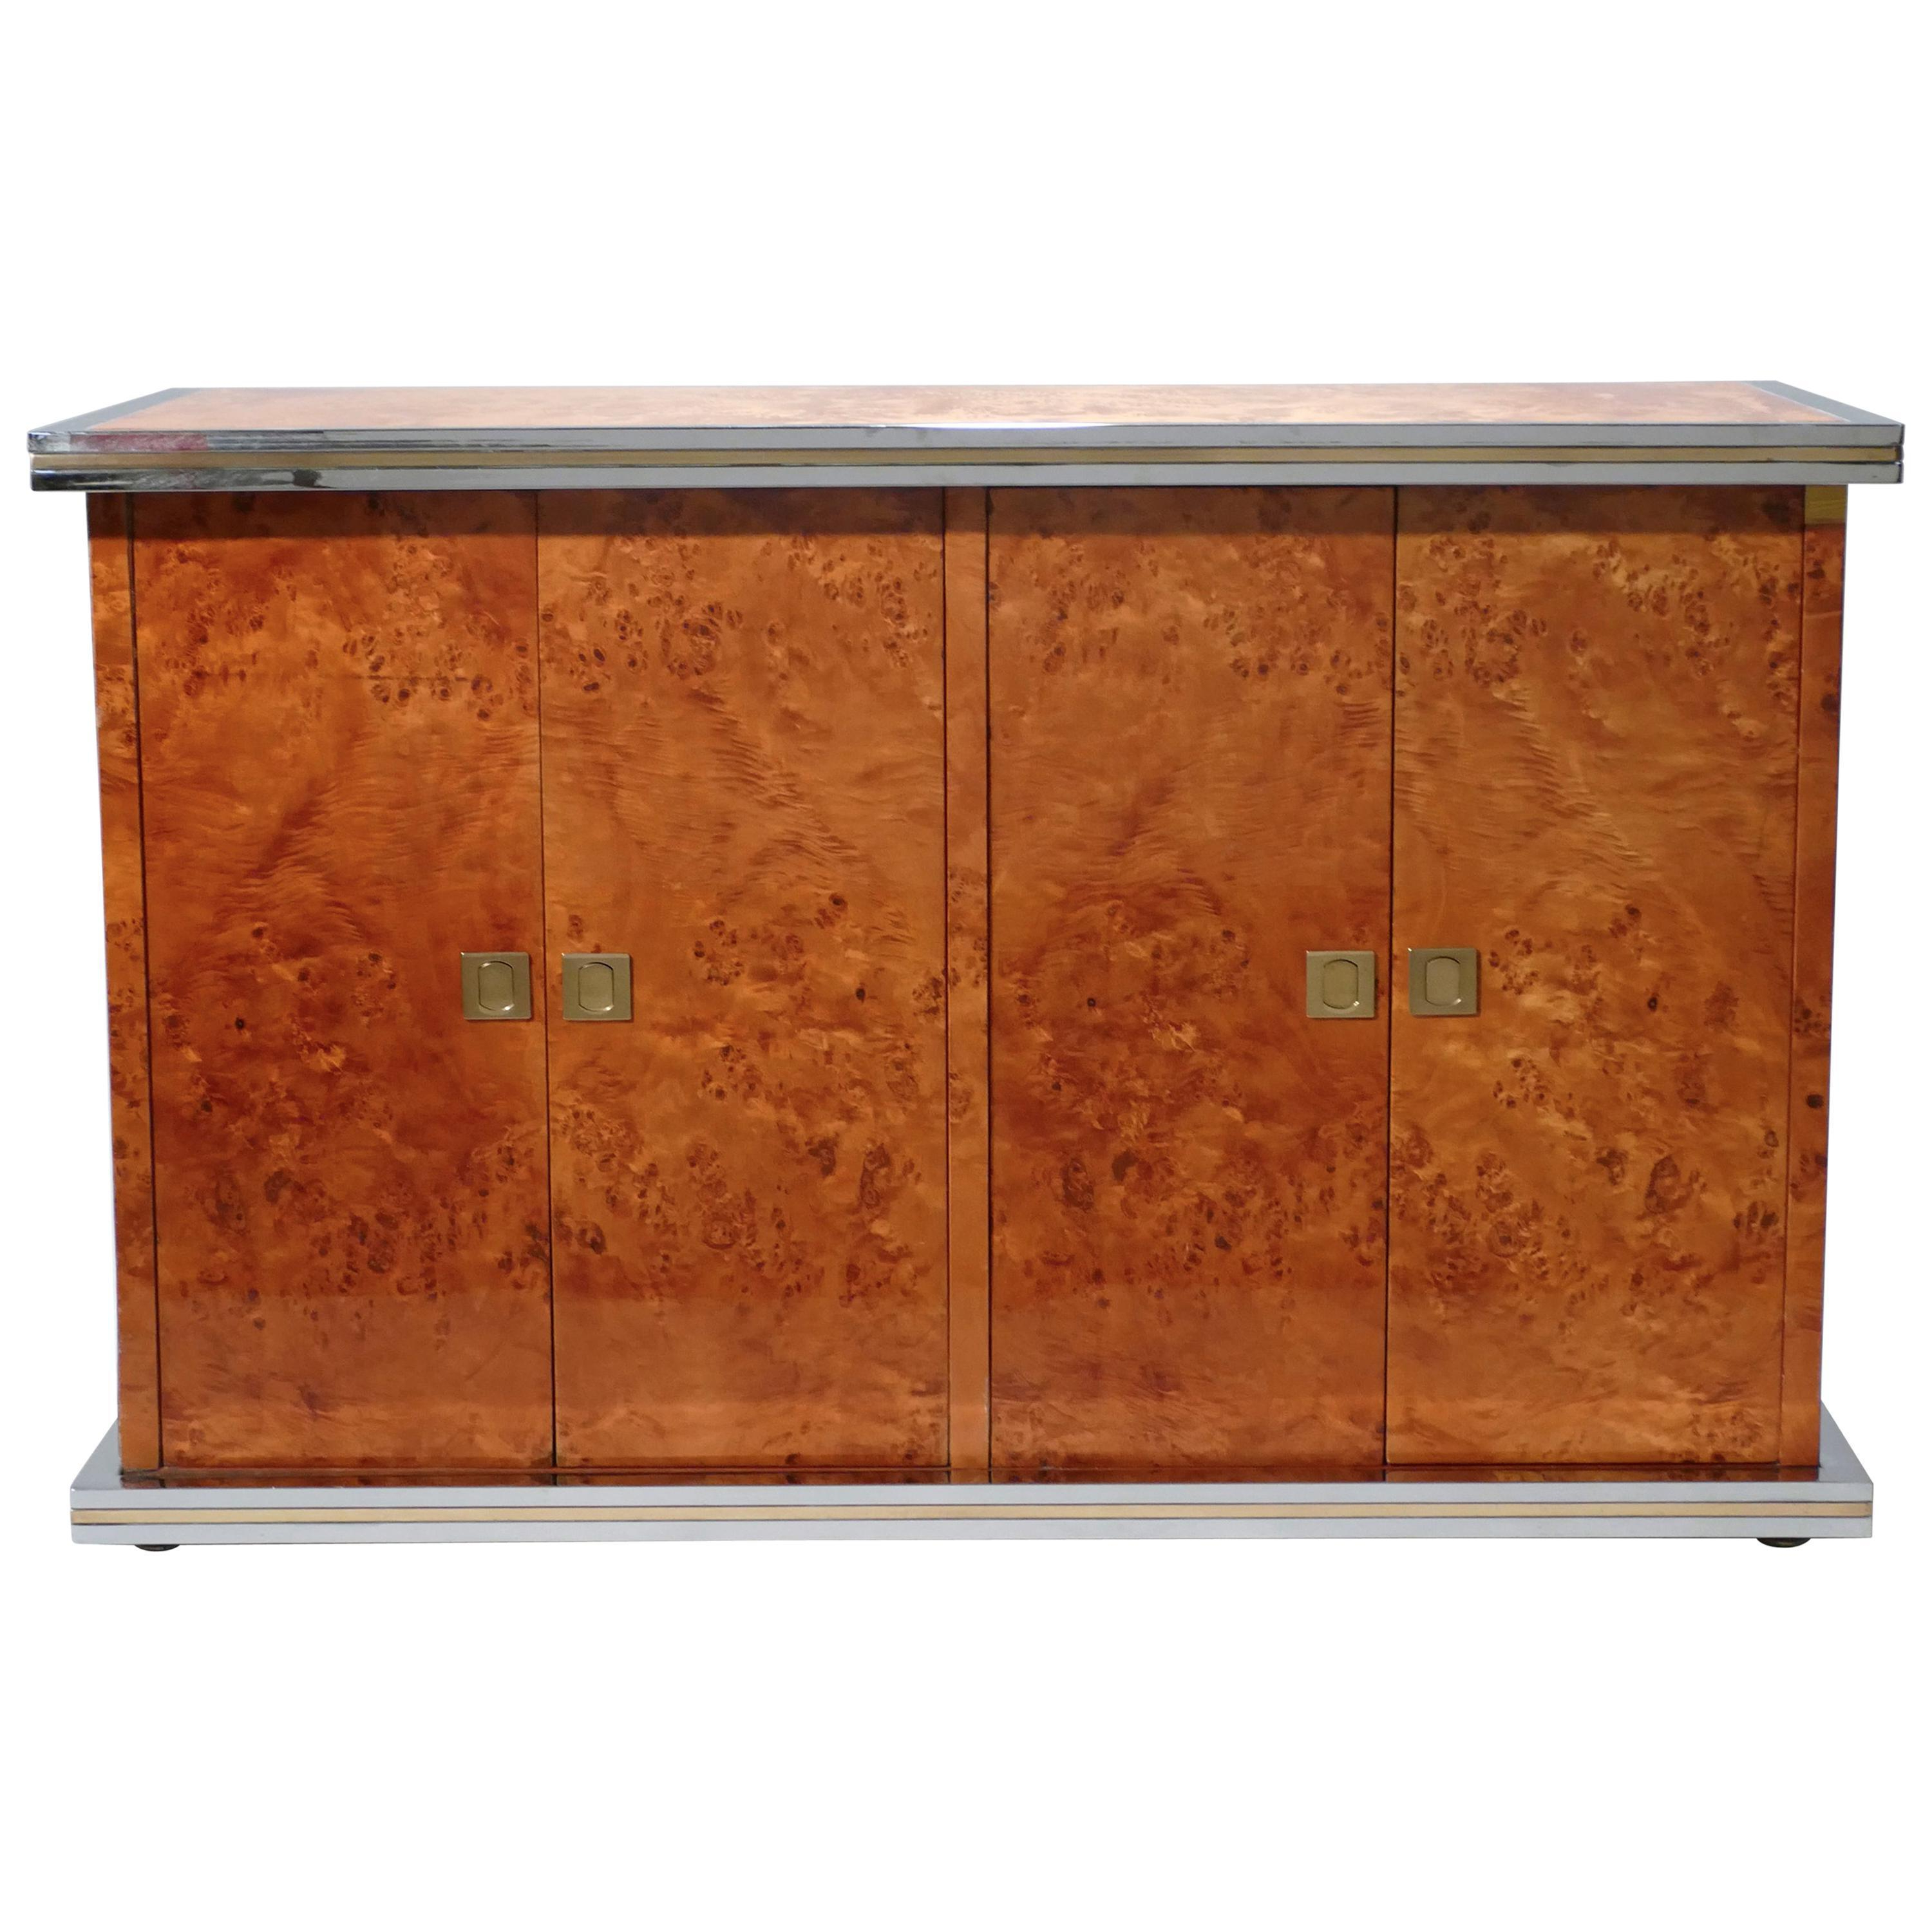 Willy Rizzo Burl Chrome And Brass Small Credenza, 1970s Within Symmetric Blue Swirl Credenzas (View 14 of 20)